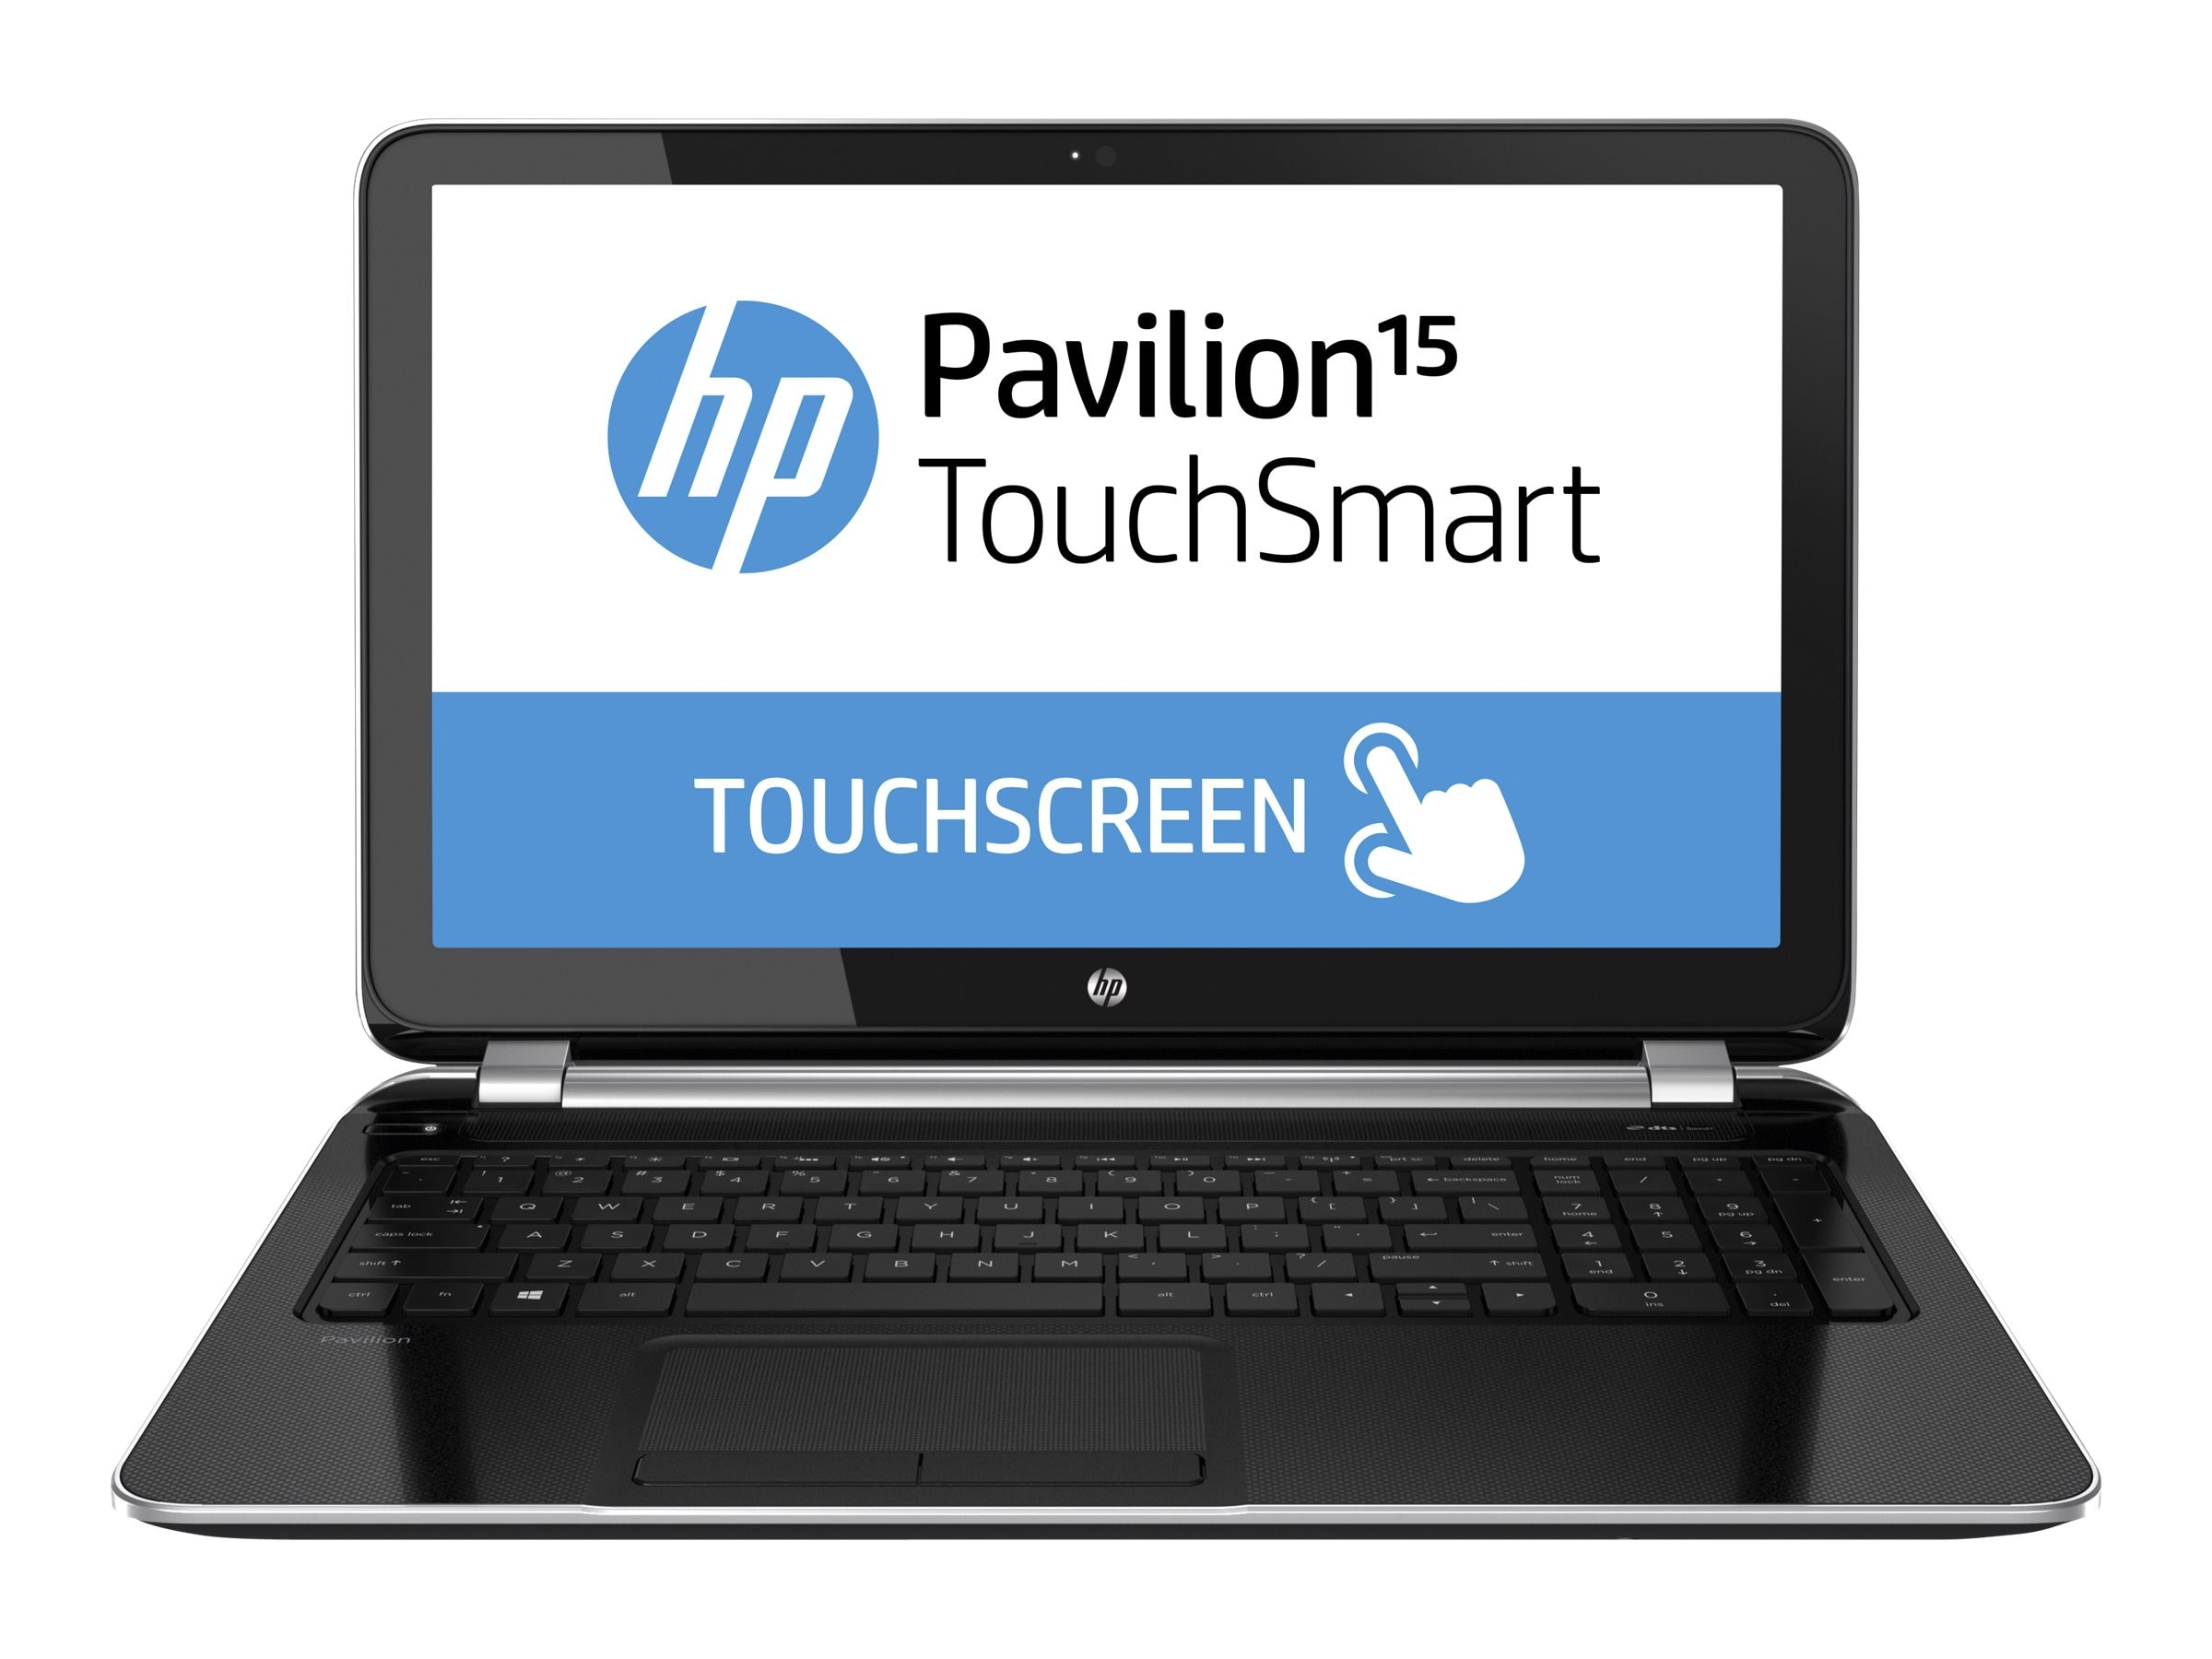 HP Pavilion TouchSmart 15-N262NR Notebook PC, F5W32UA#ABA